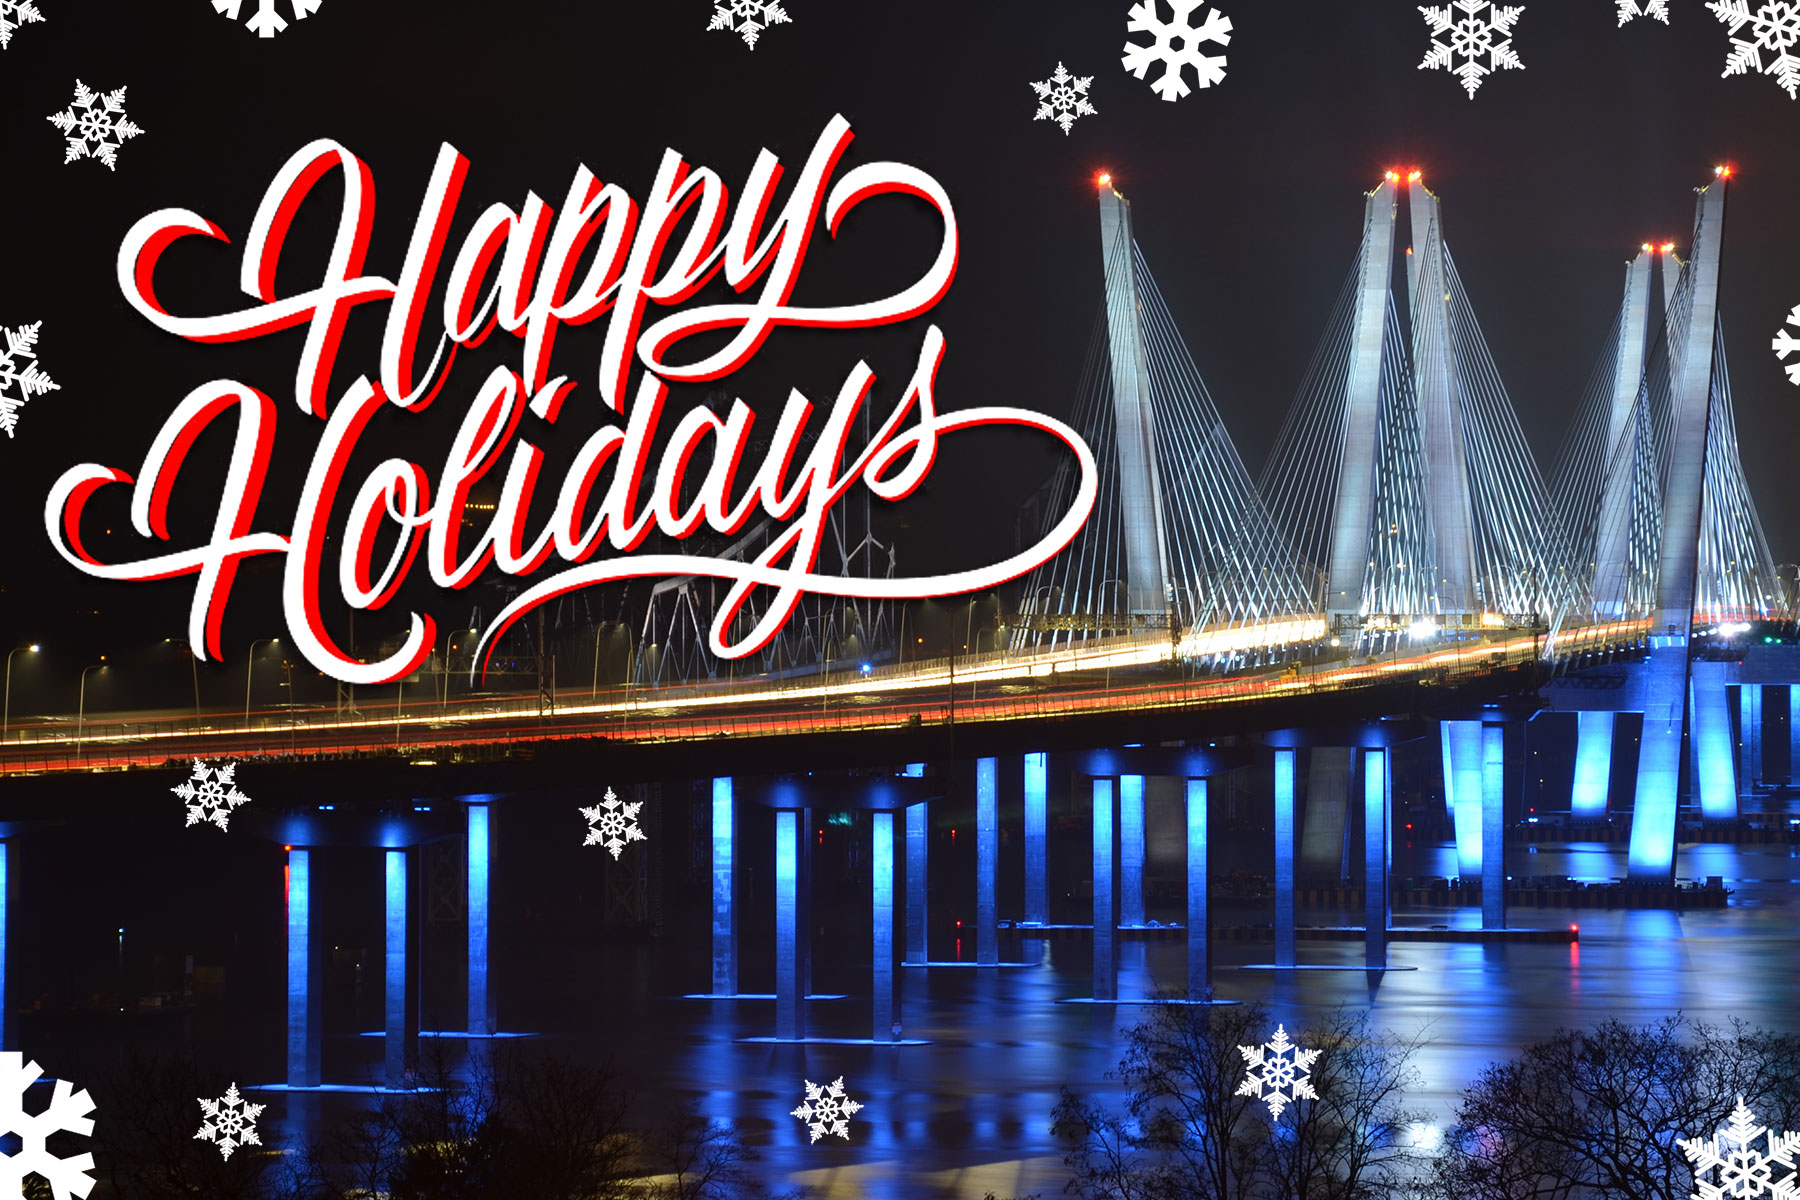 Happy Holidays Seasons Greetings From The New Ny Bridge Team The New Ny Bridge Project